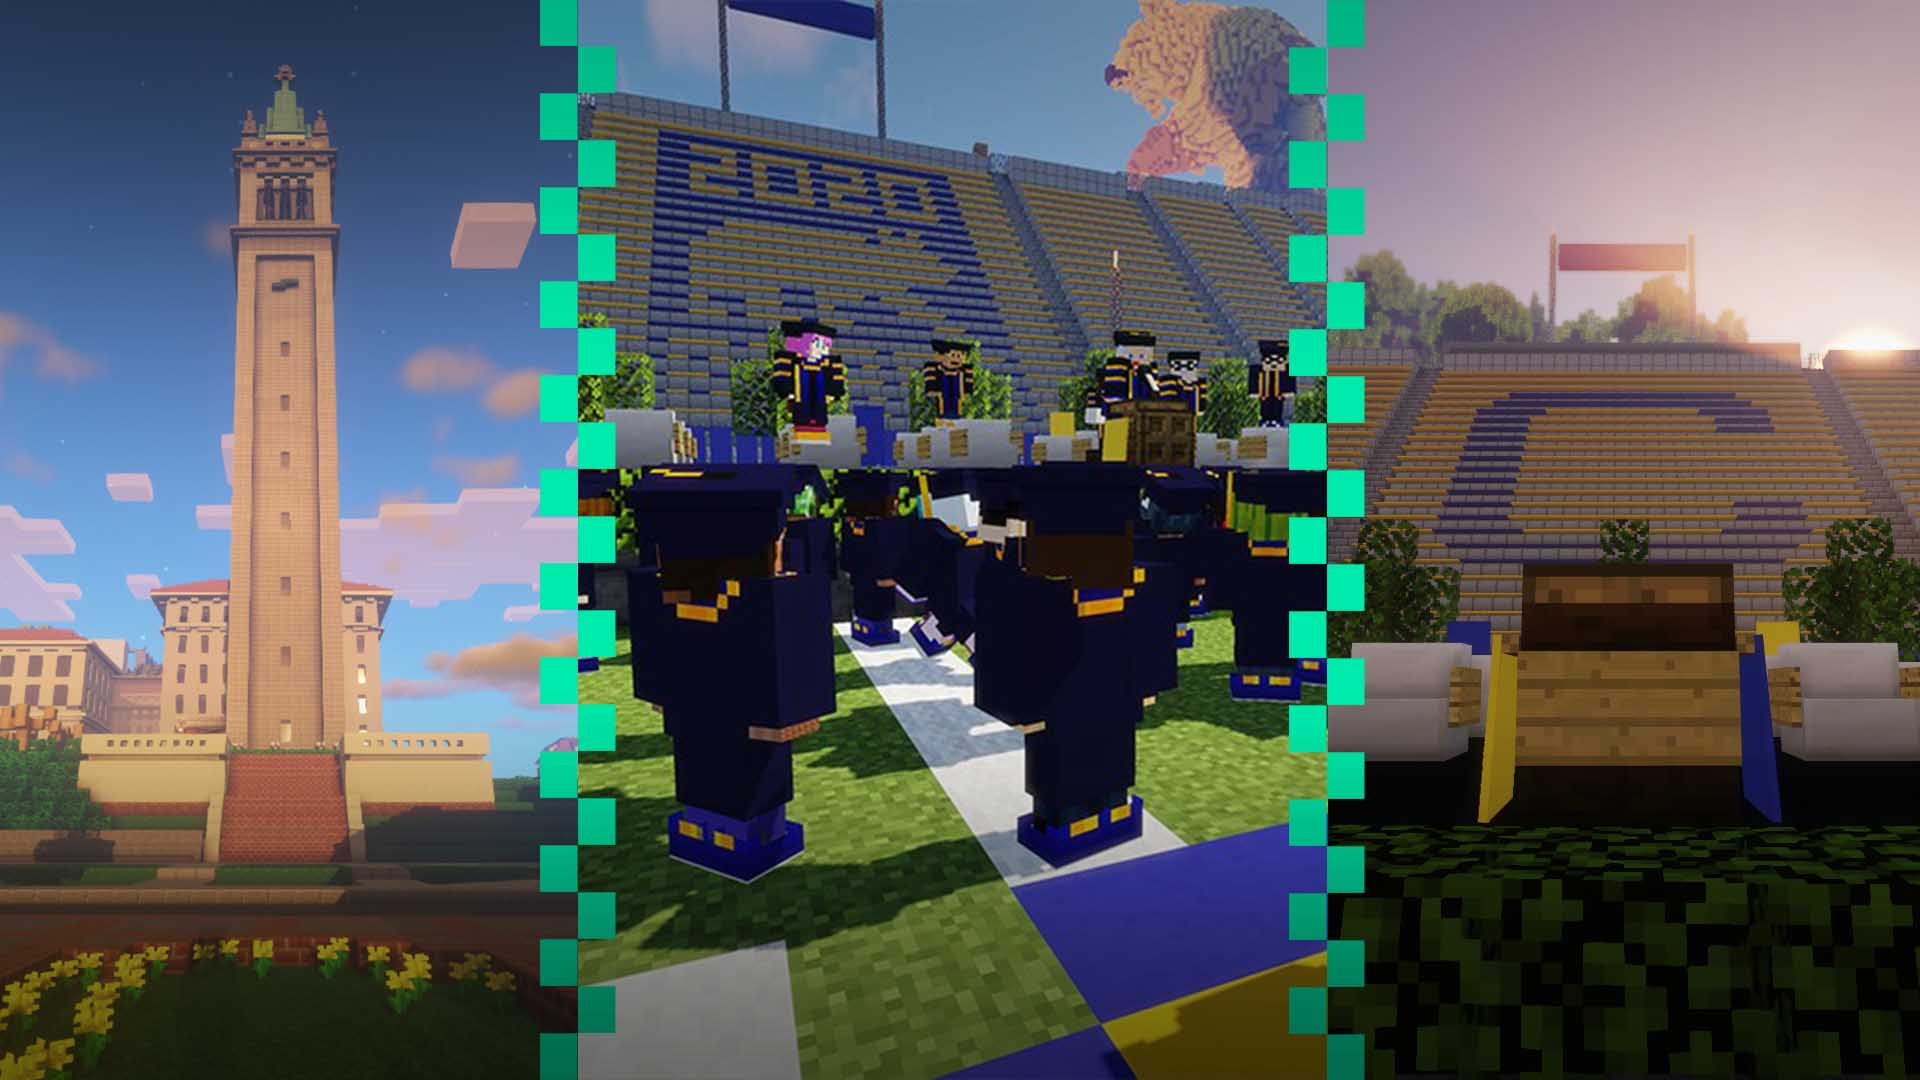 From Berkeley to Blockeley: Students Build Virtual Campus for Graduation